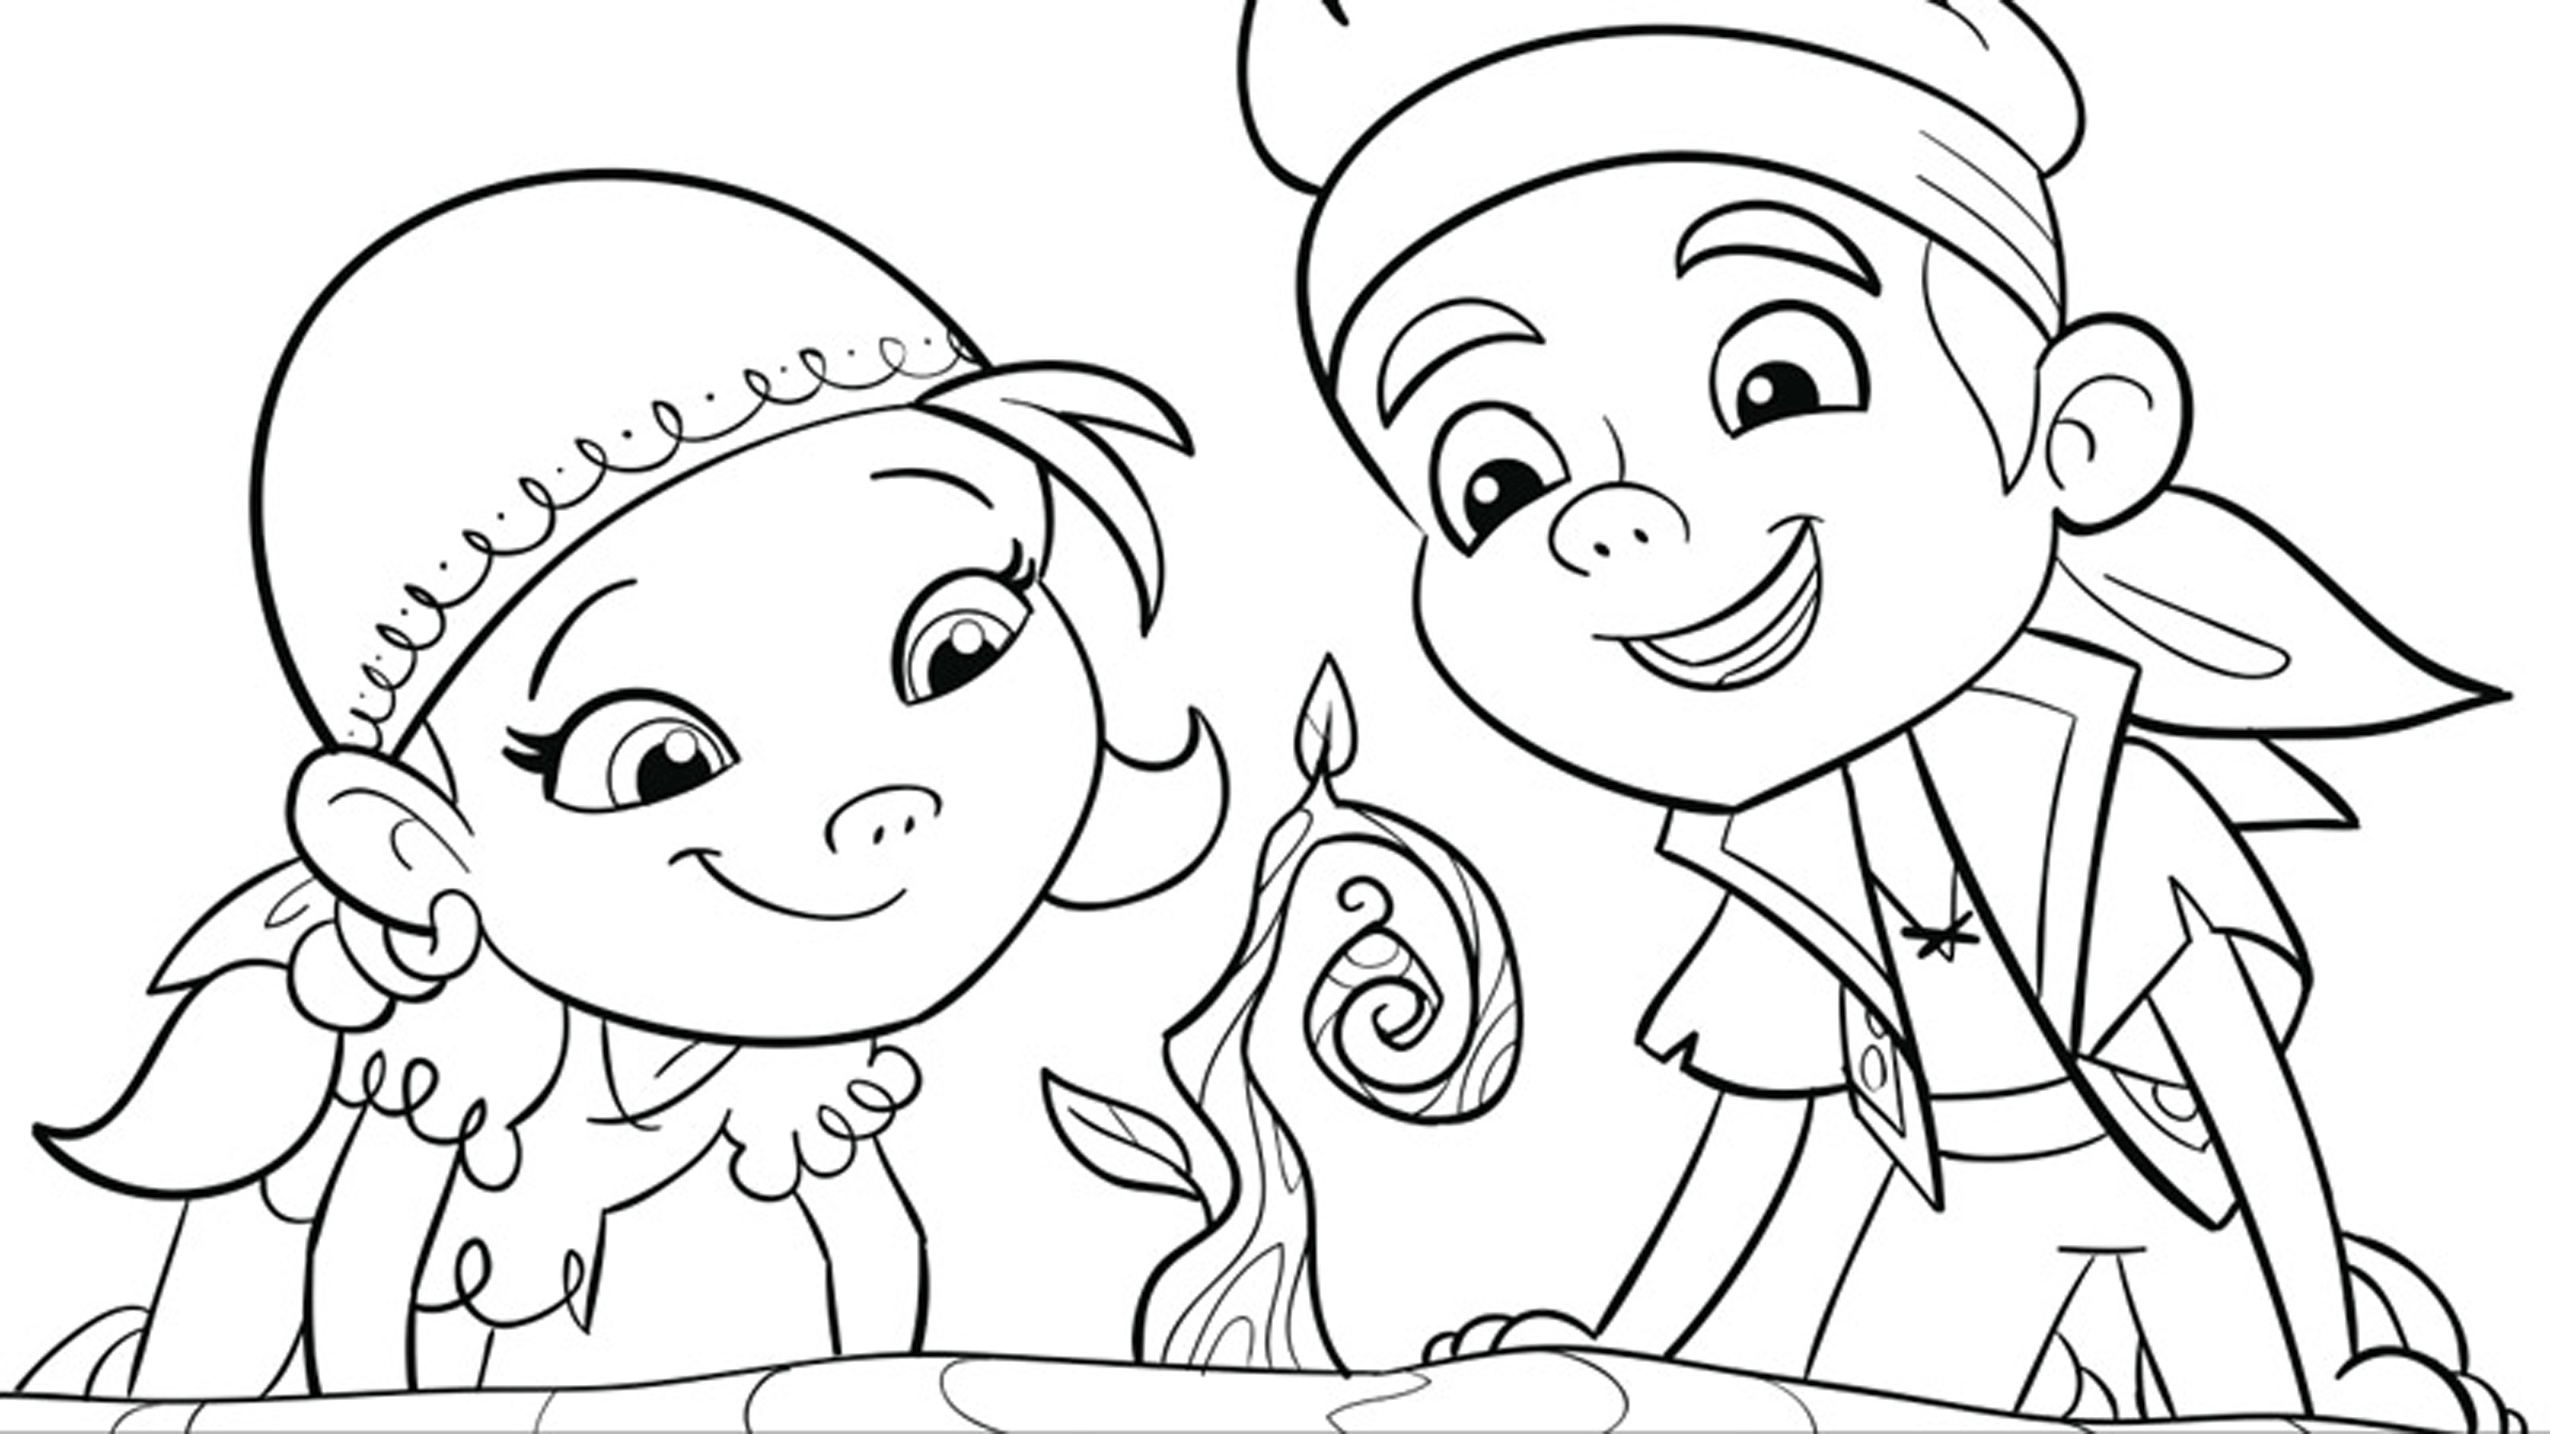 free printable disney christmas coloring pages | Disney Christmas Coloring Pages For Kids Printable ...